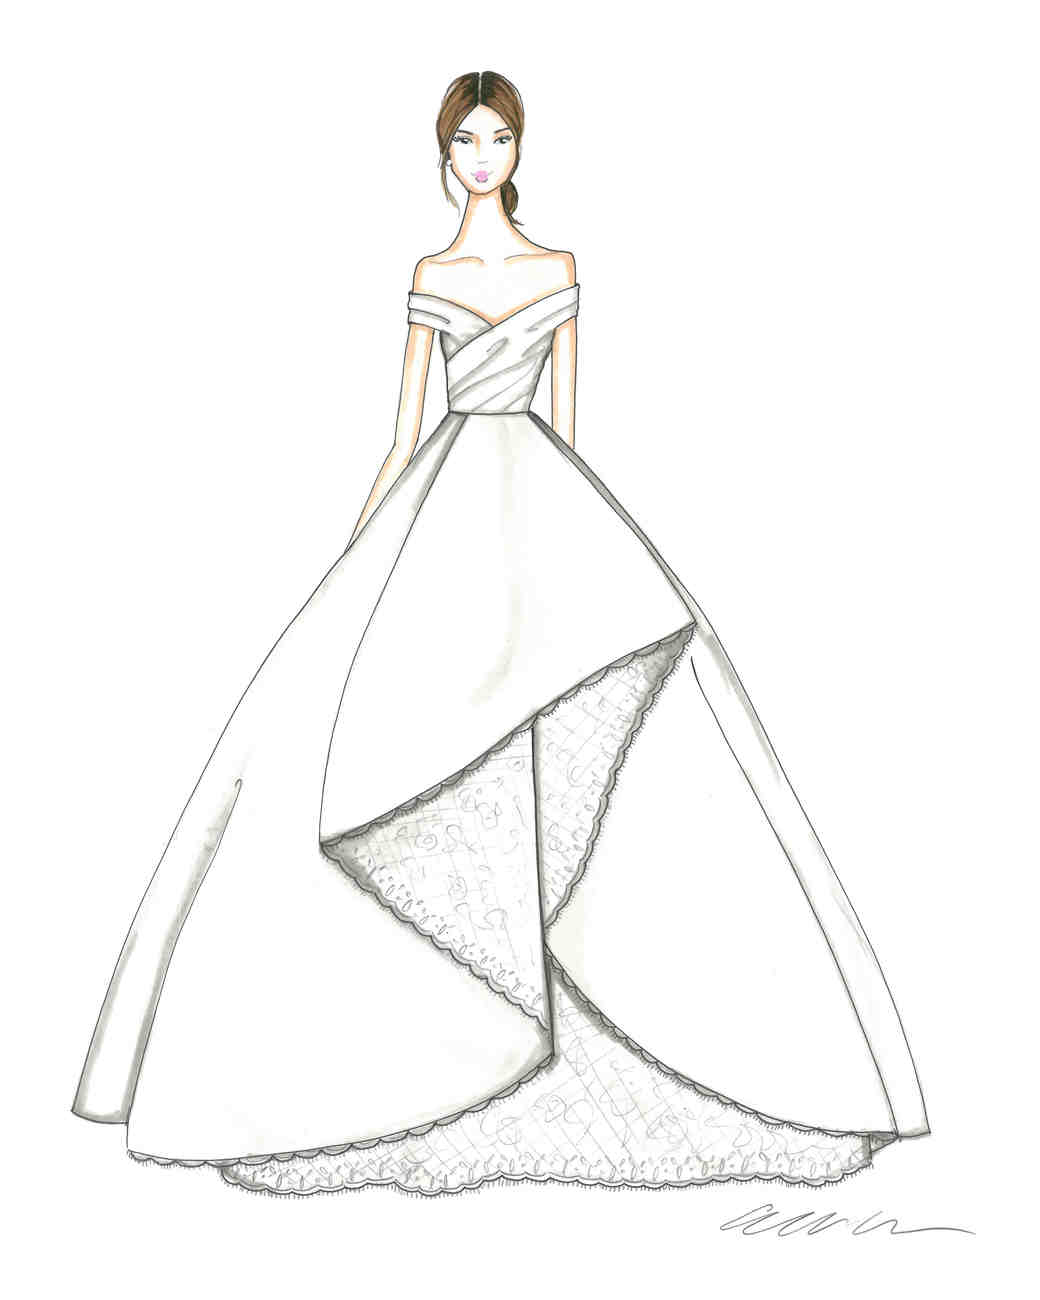 Dress Drawing at GetDrawings.com | Free for personal use Dress ...